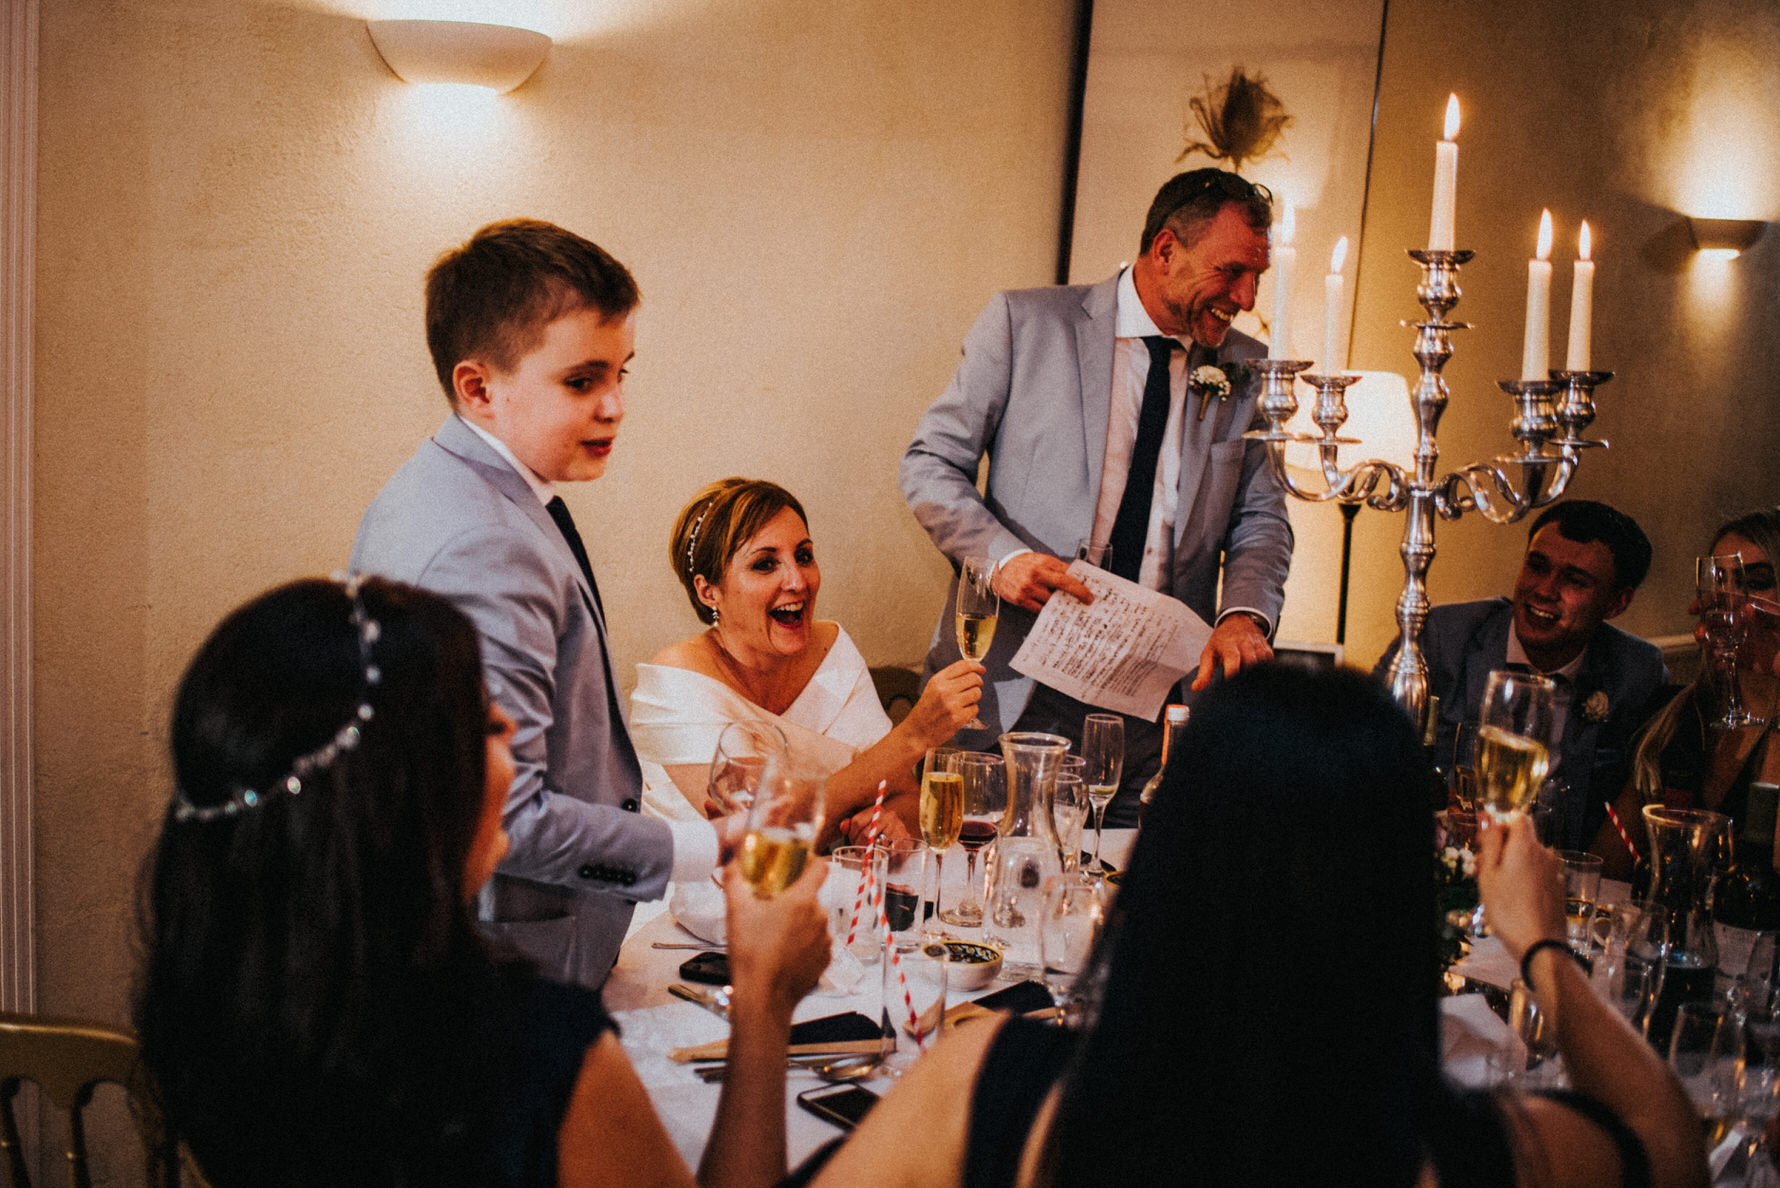 Cheshire Documentary Wedding Photography at Belmount Hall